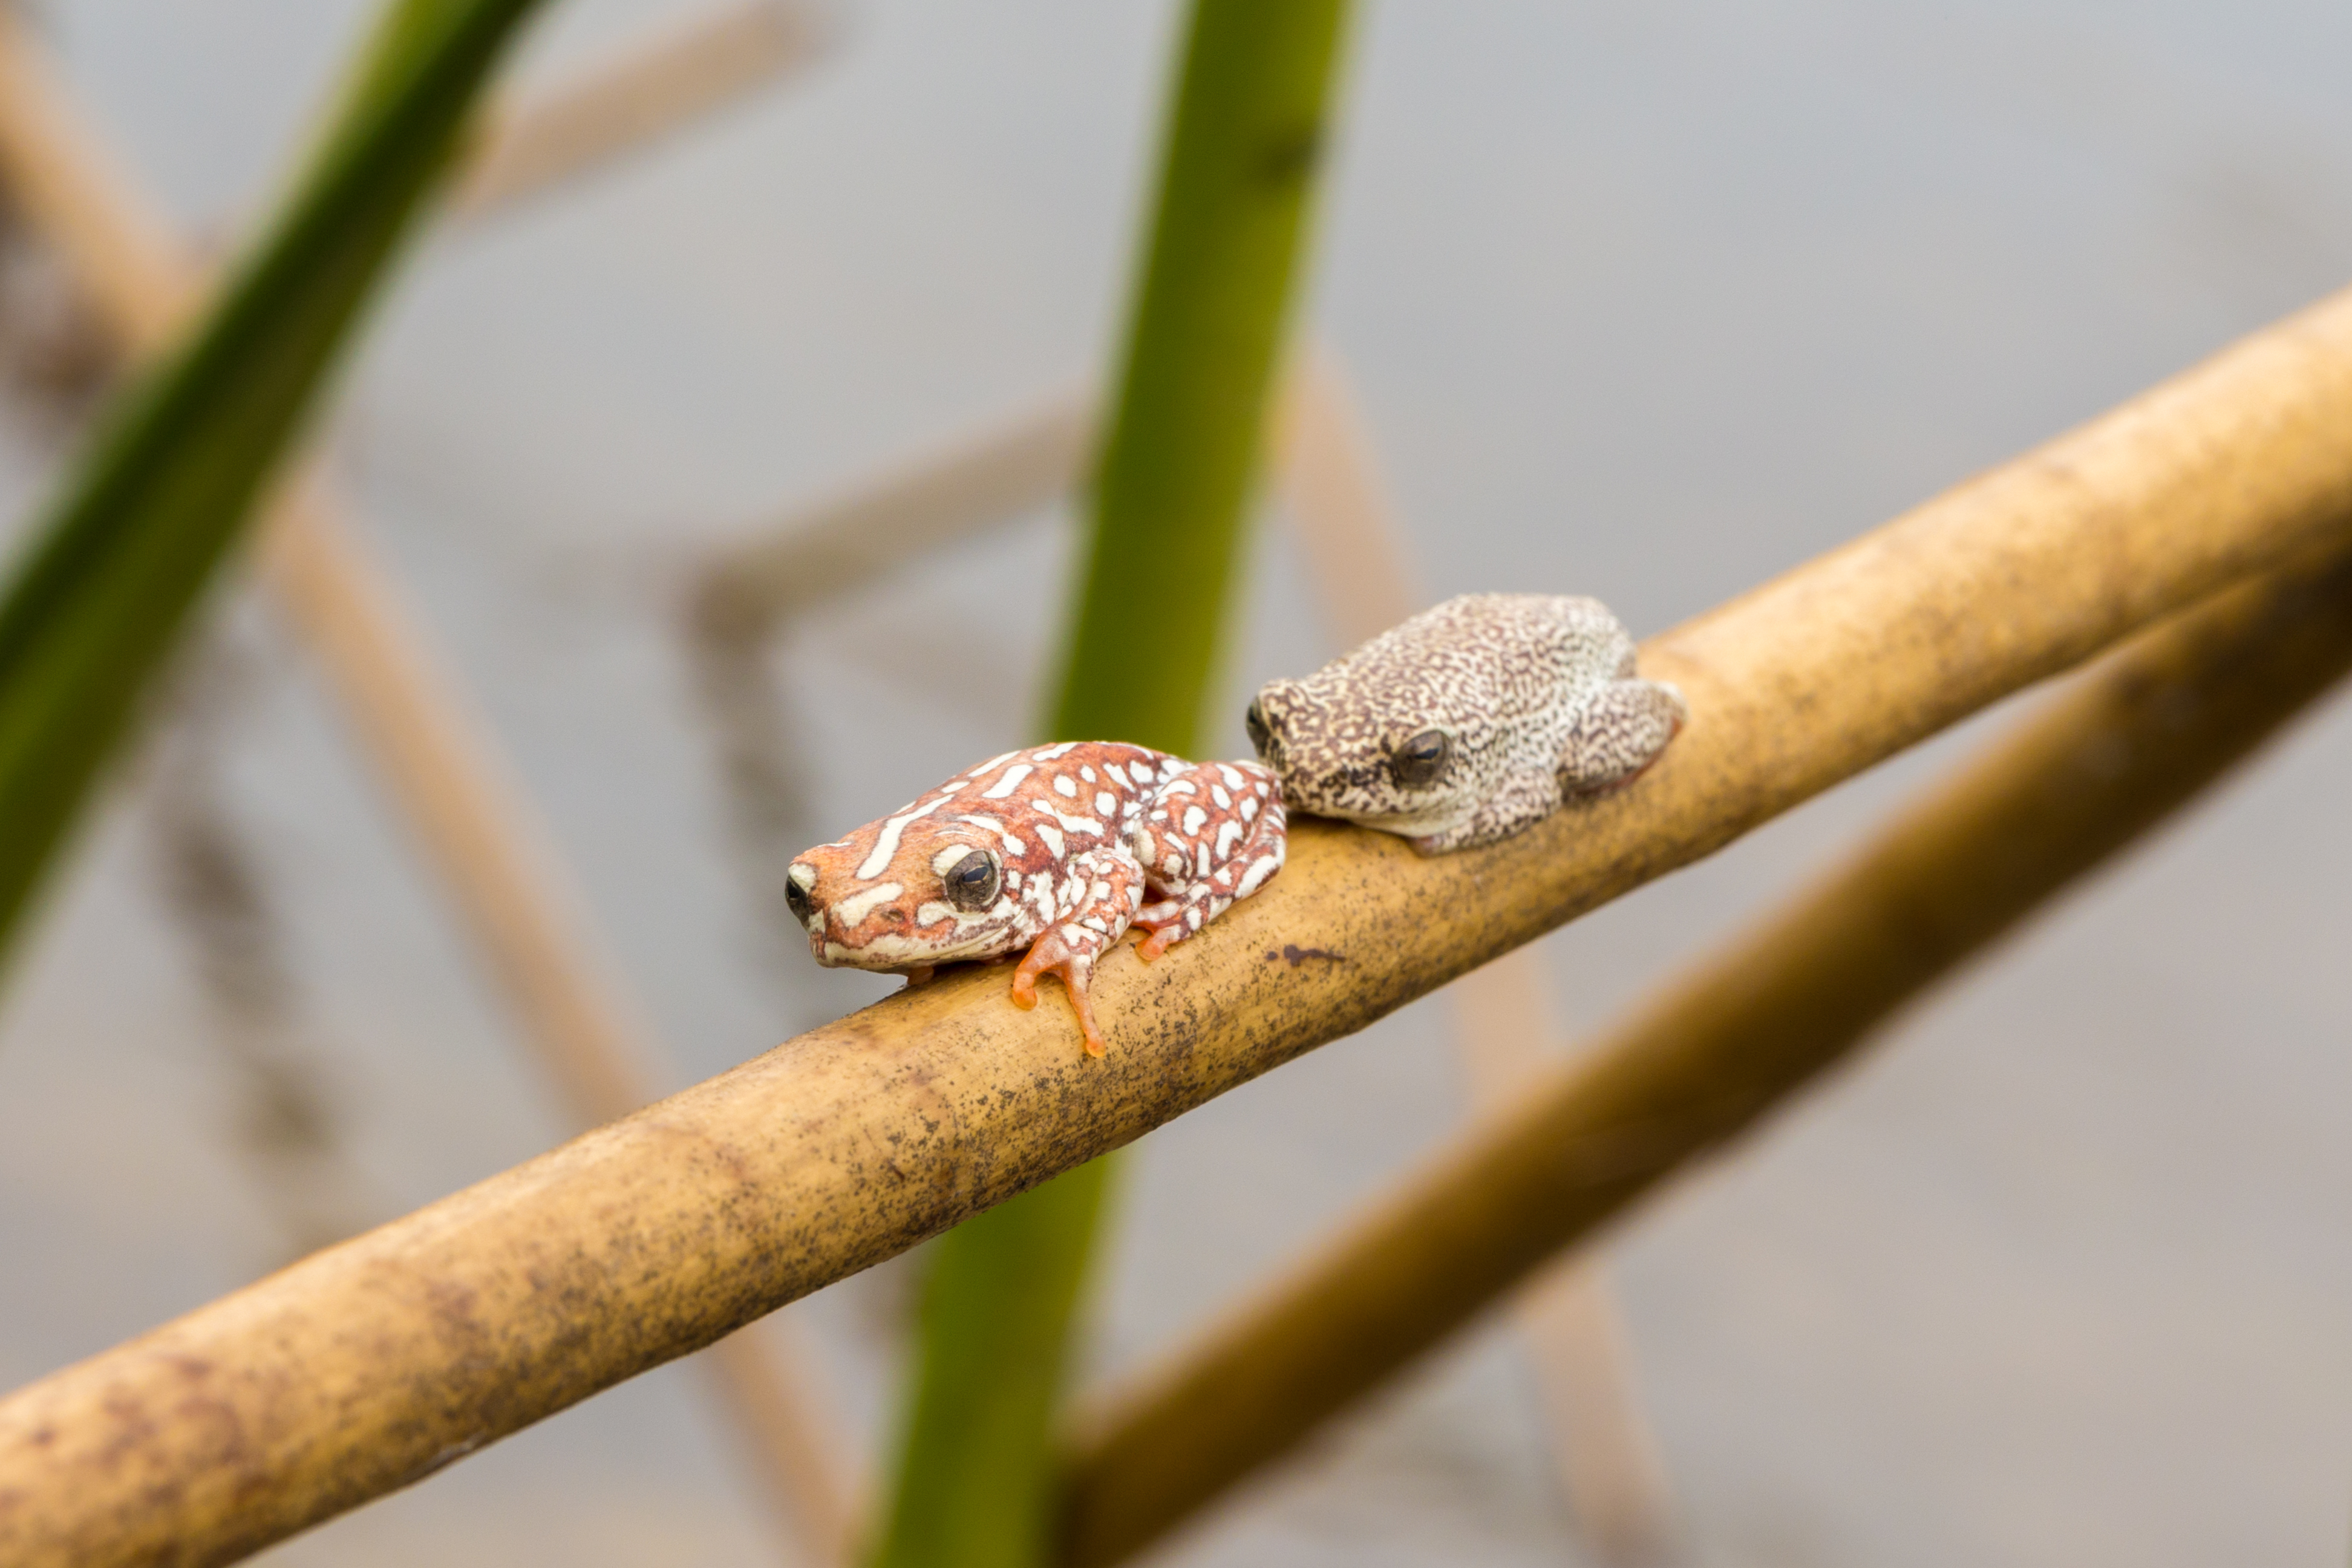 Painted Reed Frogs, Okavango Delta, Botswana